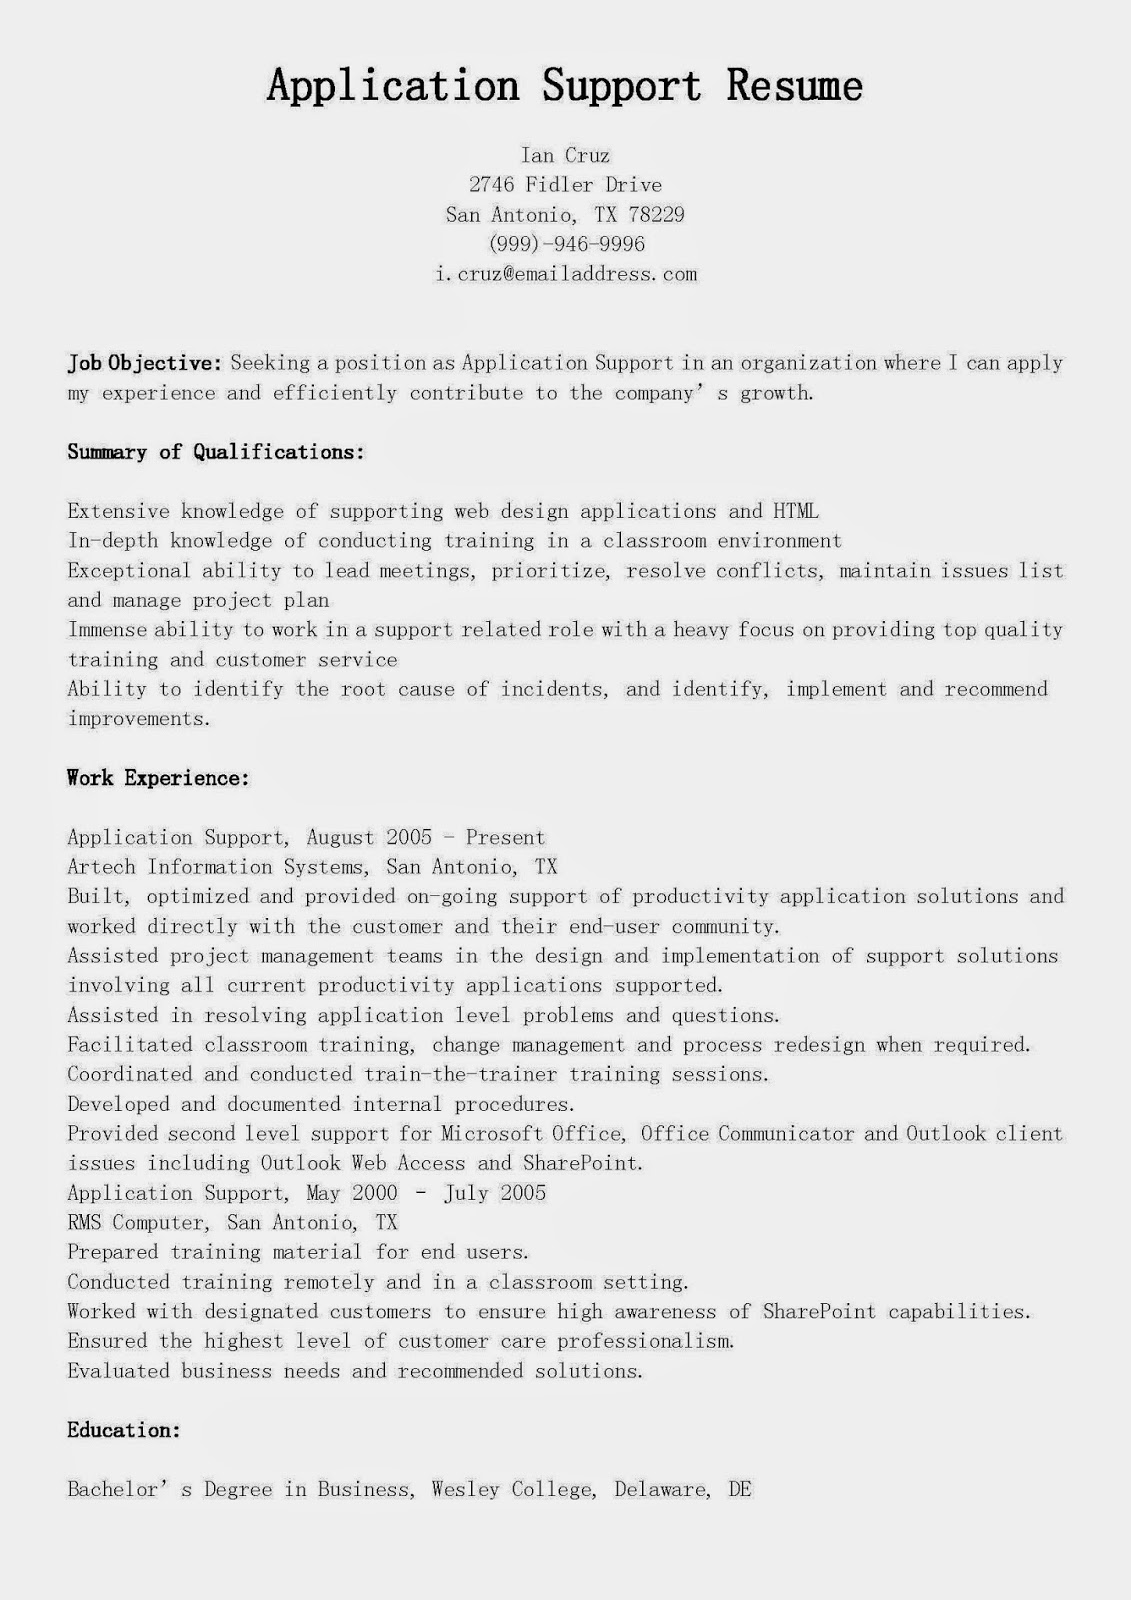 resume samples  application support resume sample